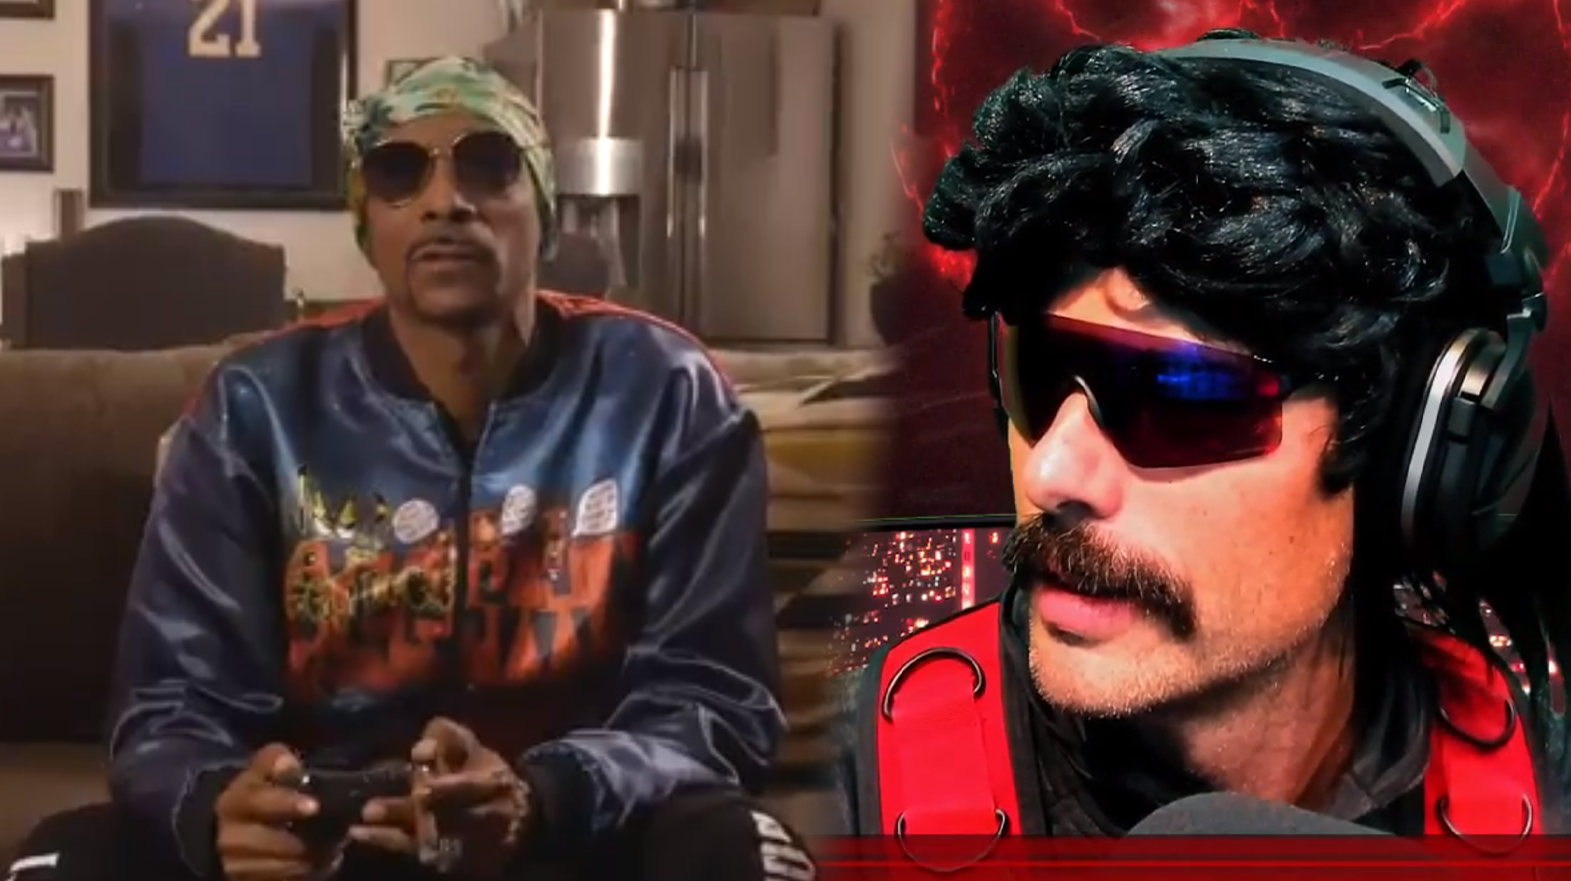 Snoop Dogg playing games with Dr Disrespect